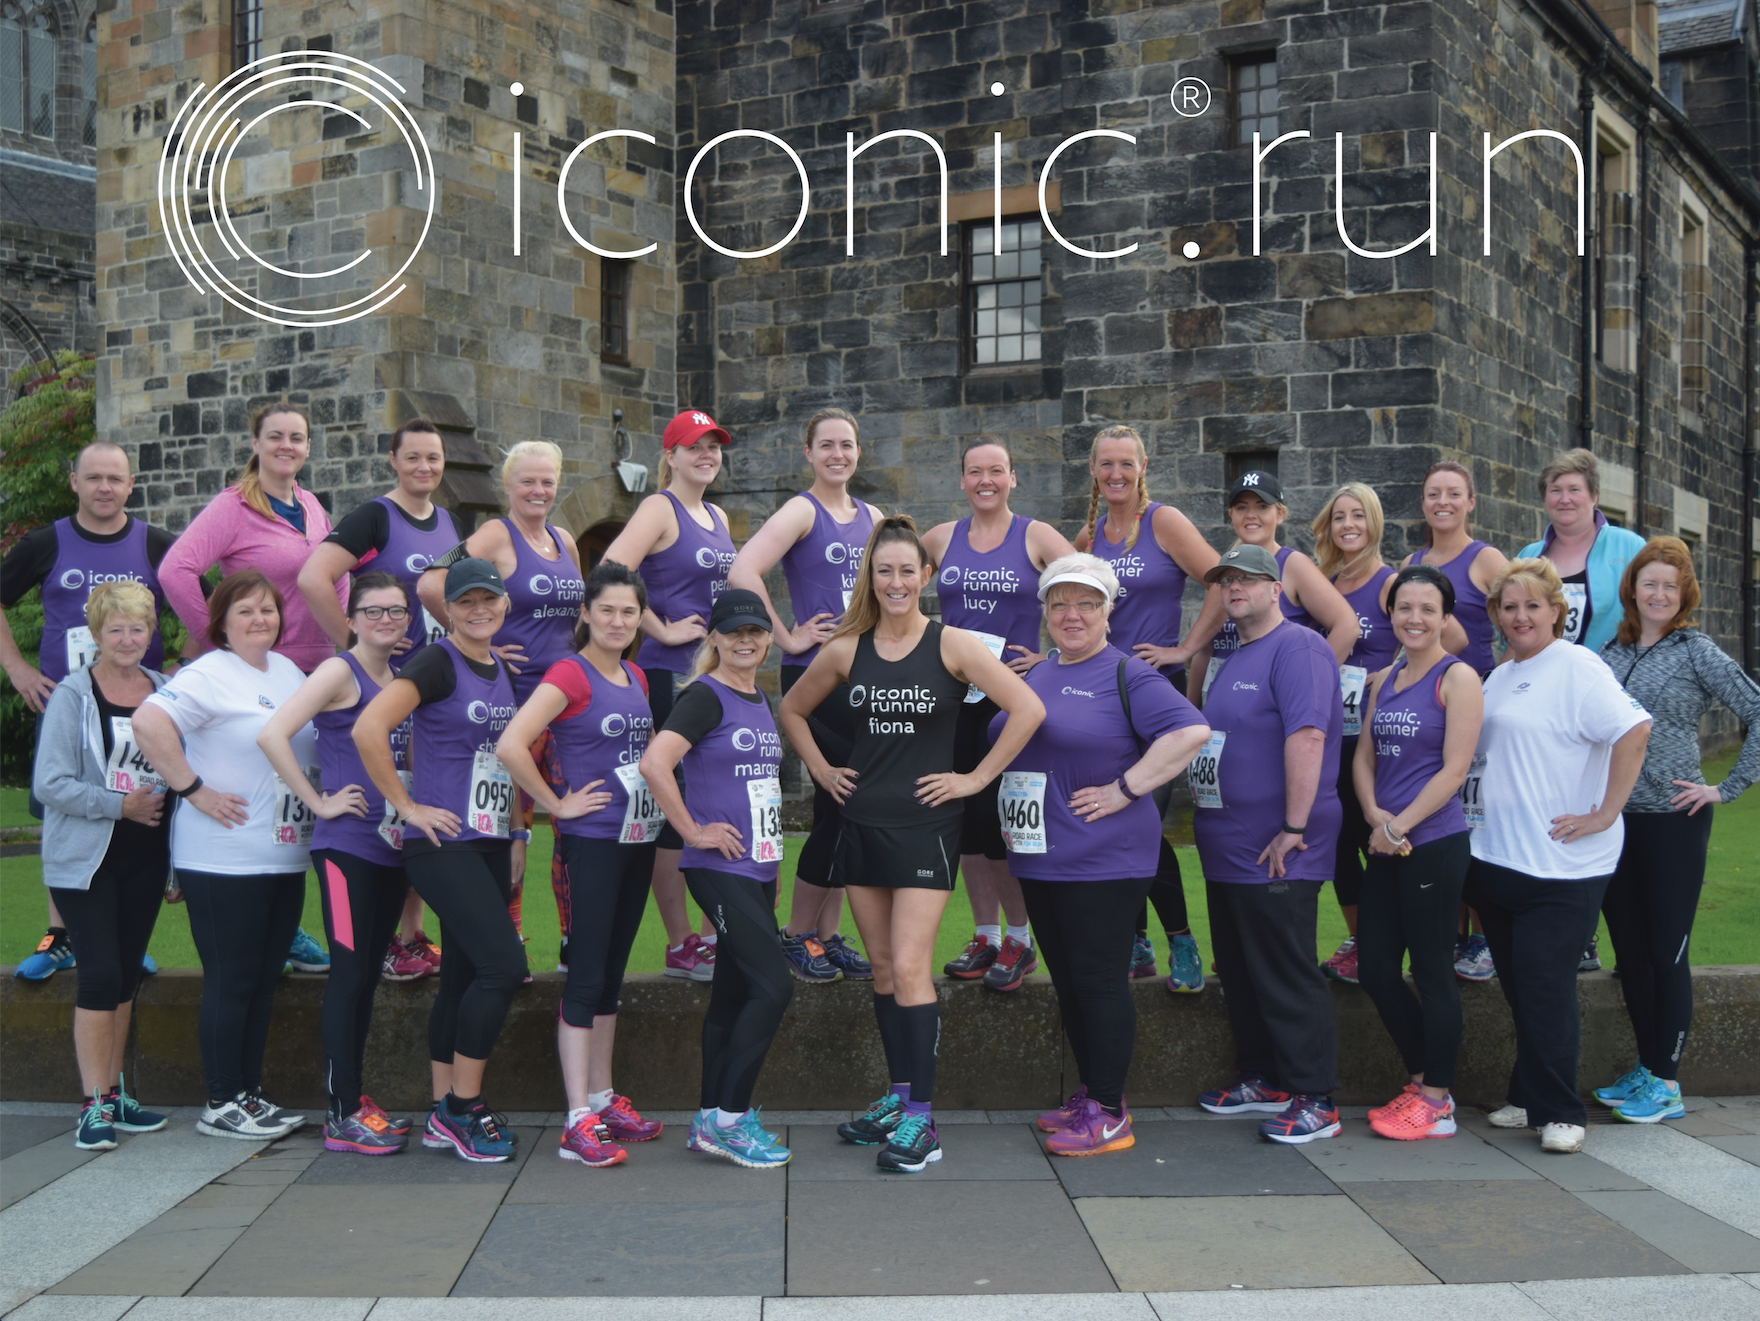 iconic.  Fitness  Gym  Paisley